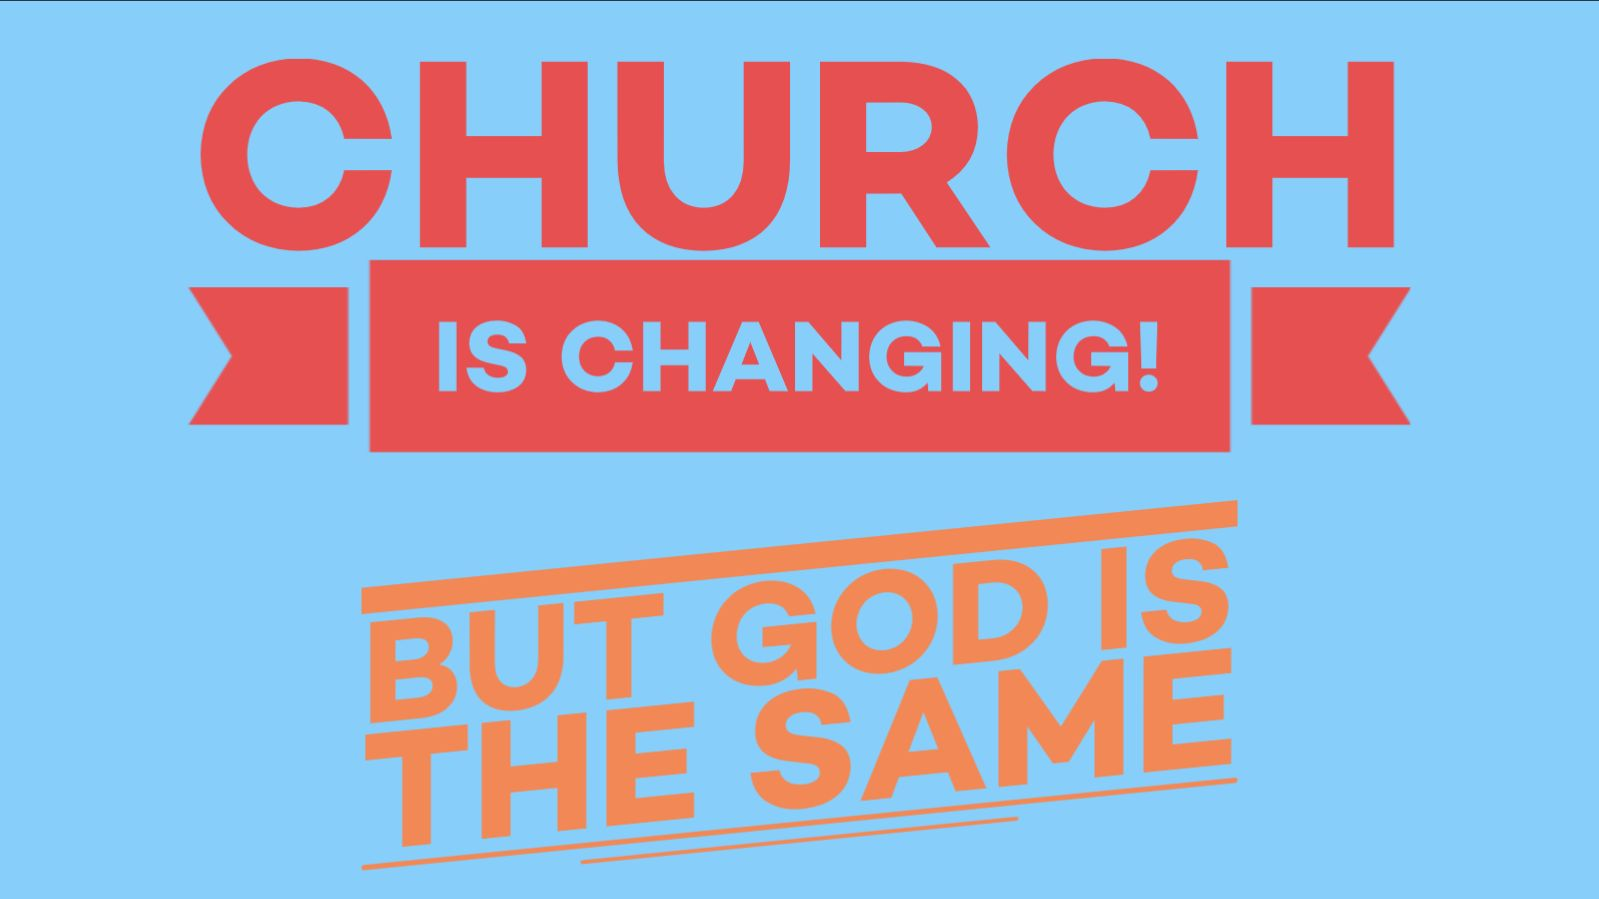 Church is changing